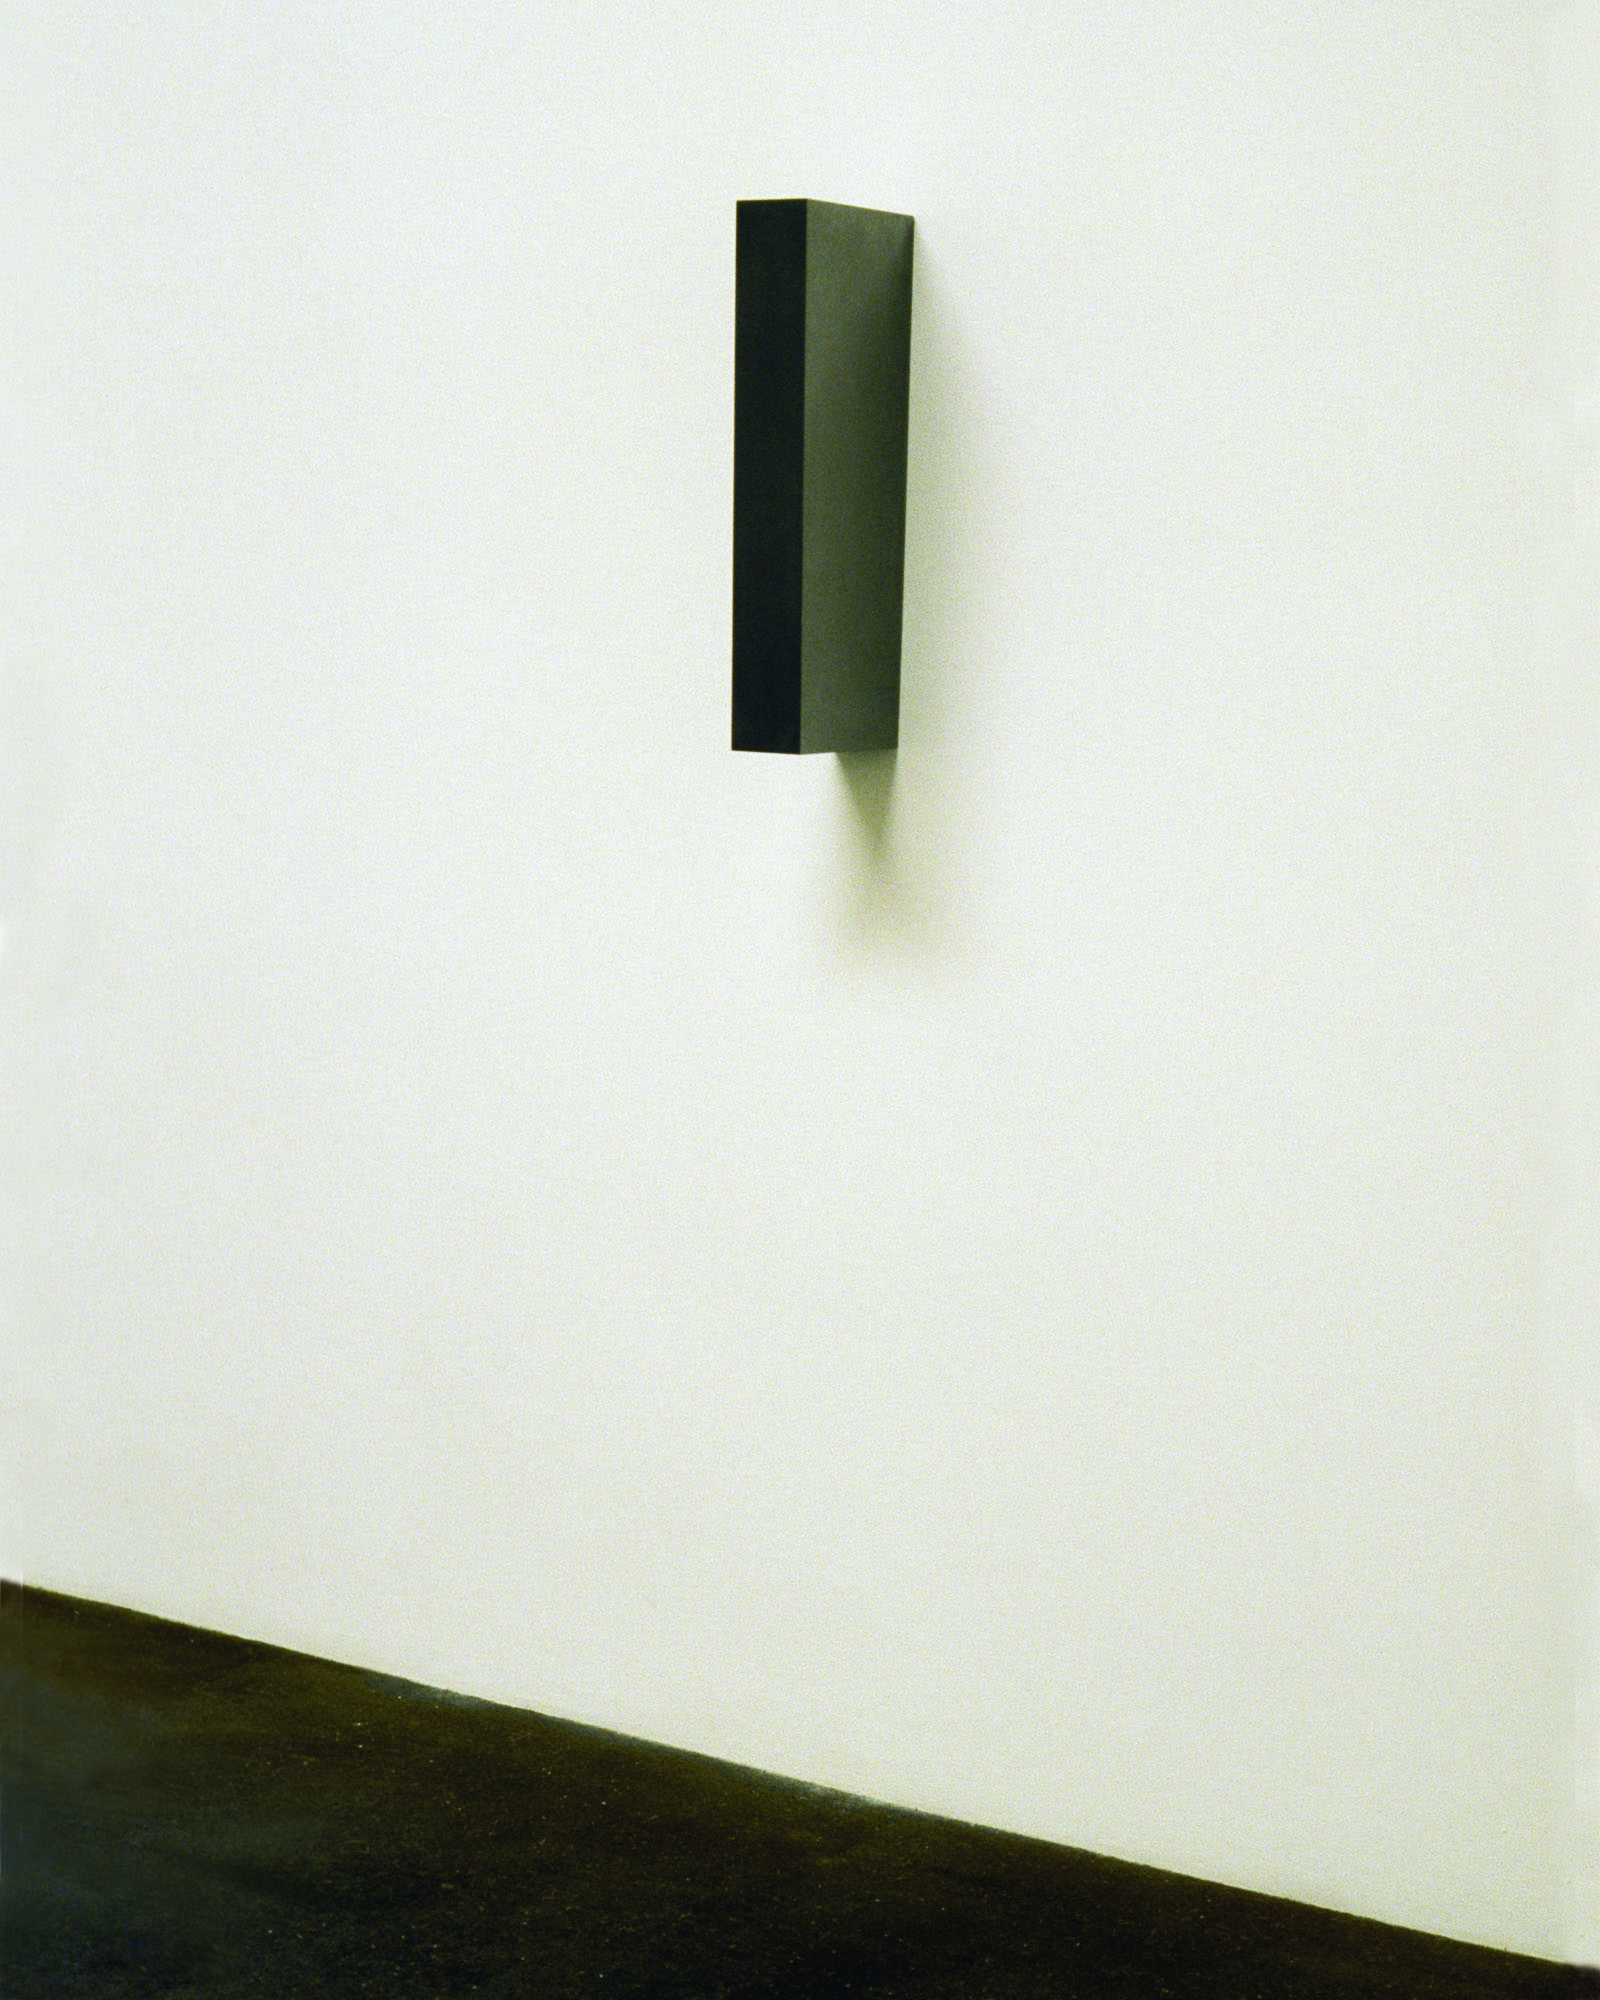 """Untitled (Asymmetrical Form no. 4), 2007  Solid graphite,21.06"""" x 3.25"""" x 8.06"""""""